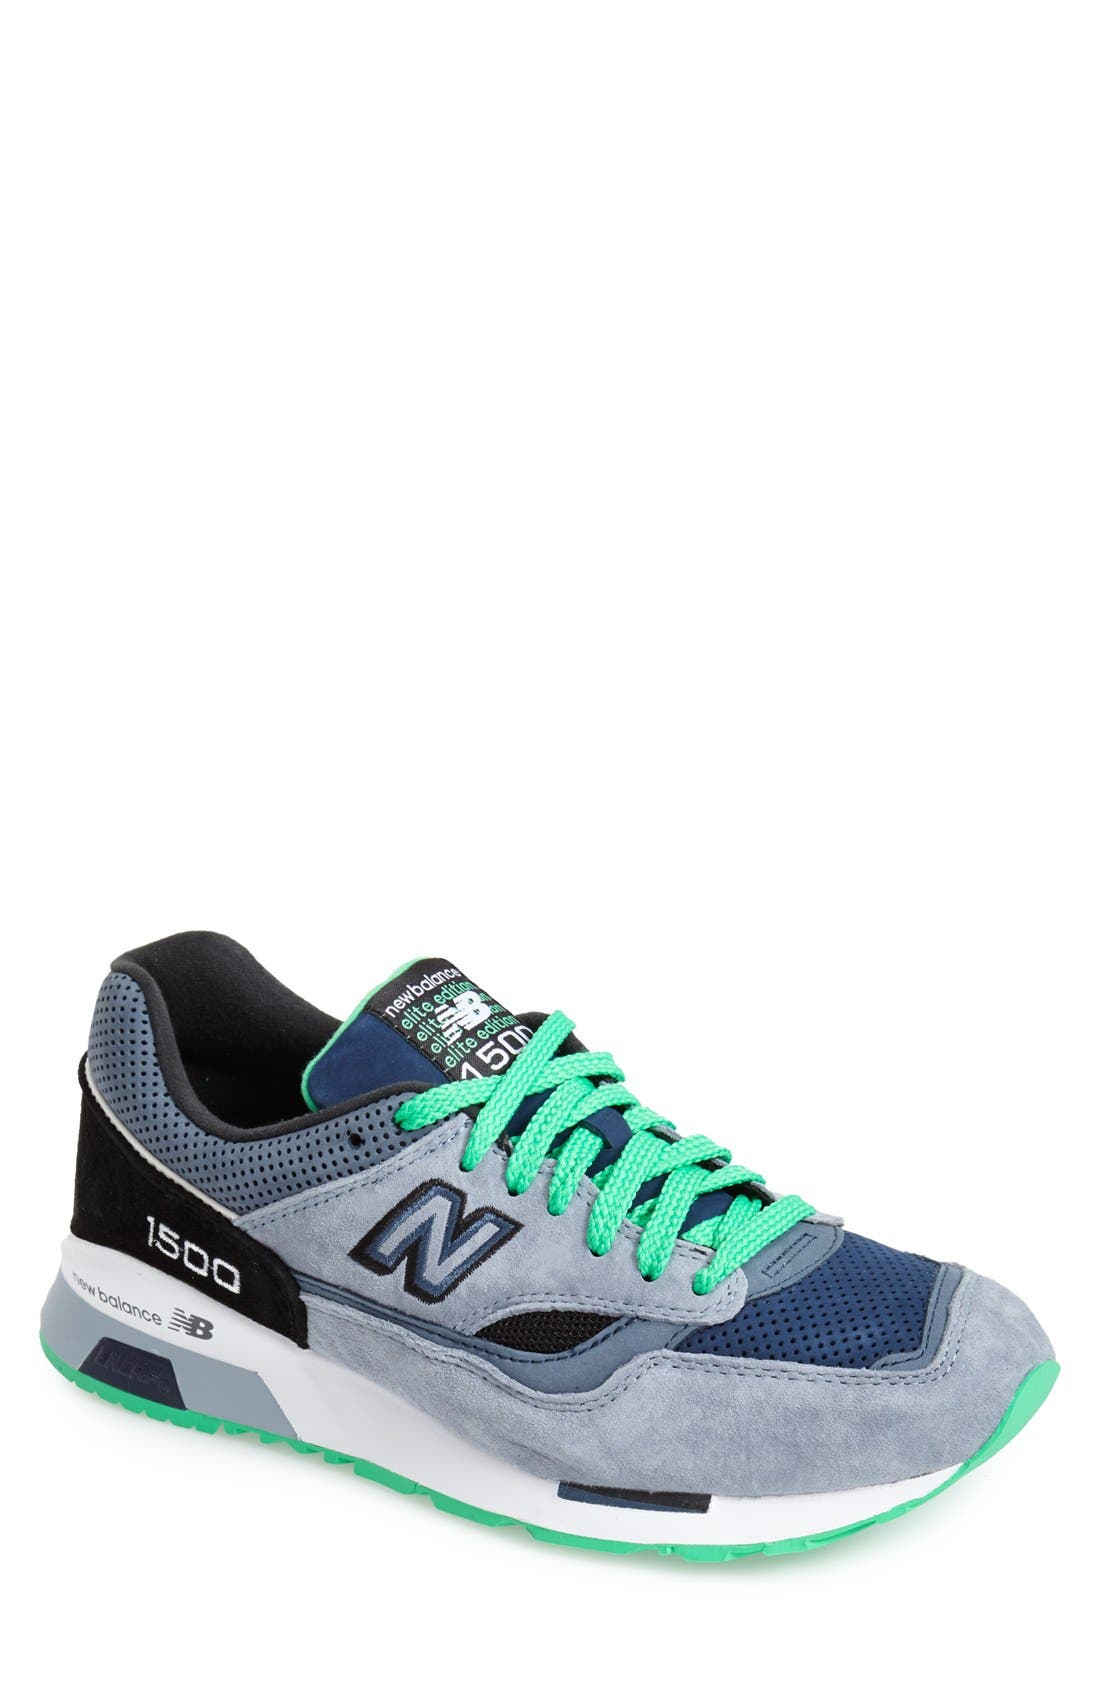 Alternate Image 1 Selected - New Balance '1500' Sneaker (Men)